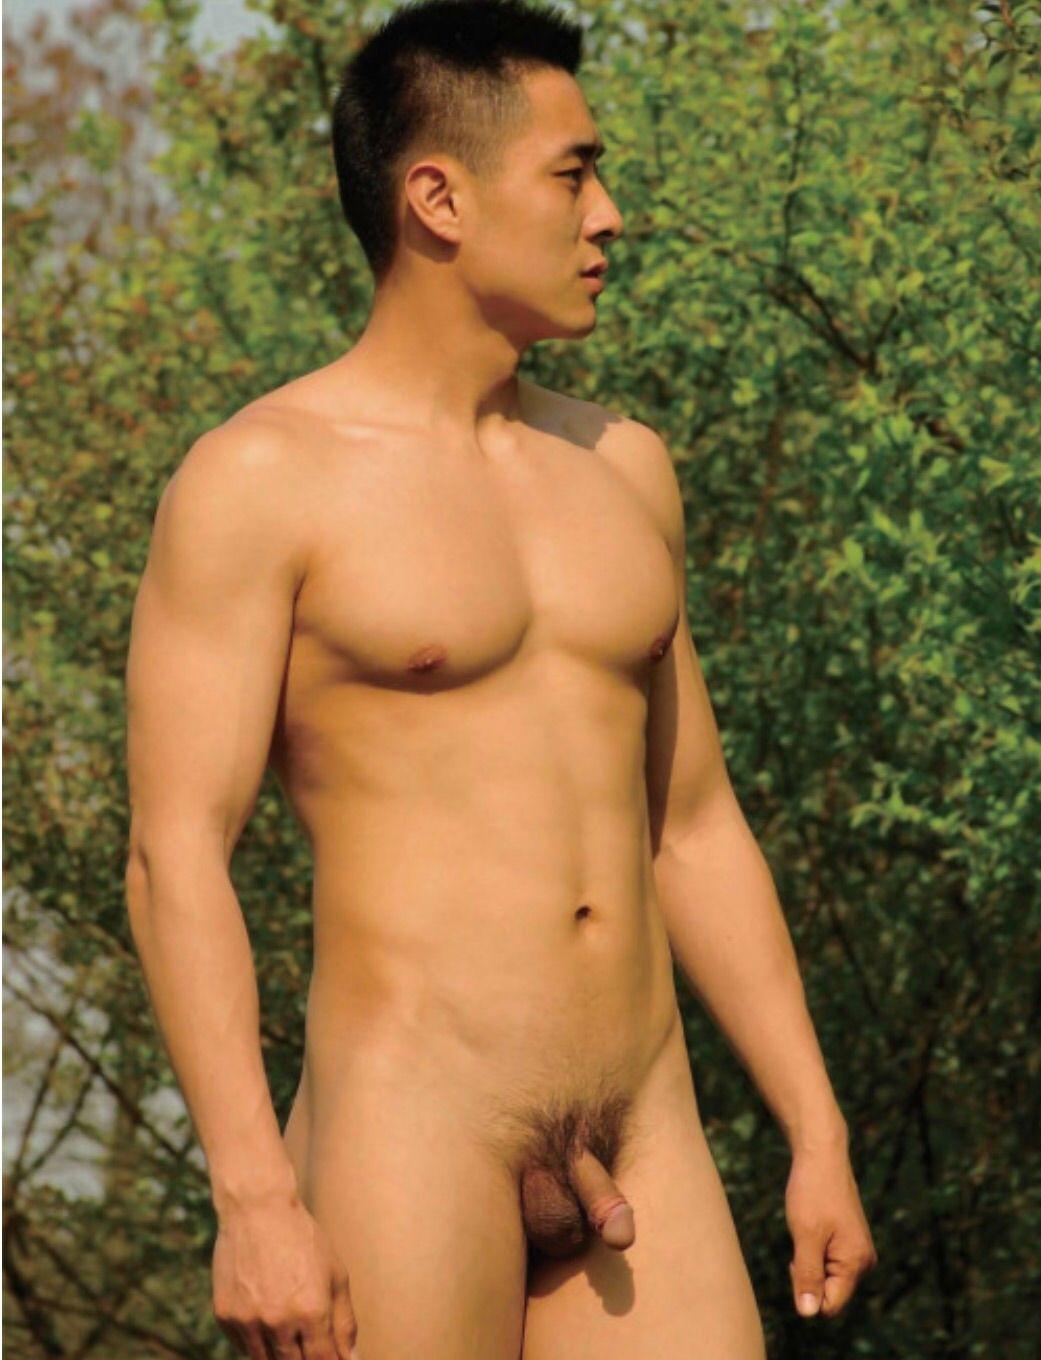 Asian male nudity